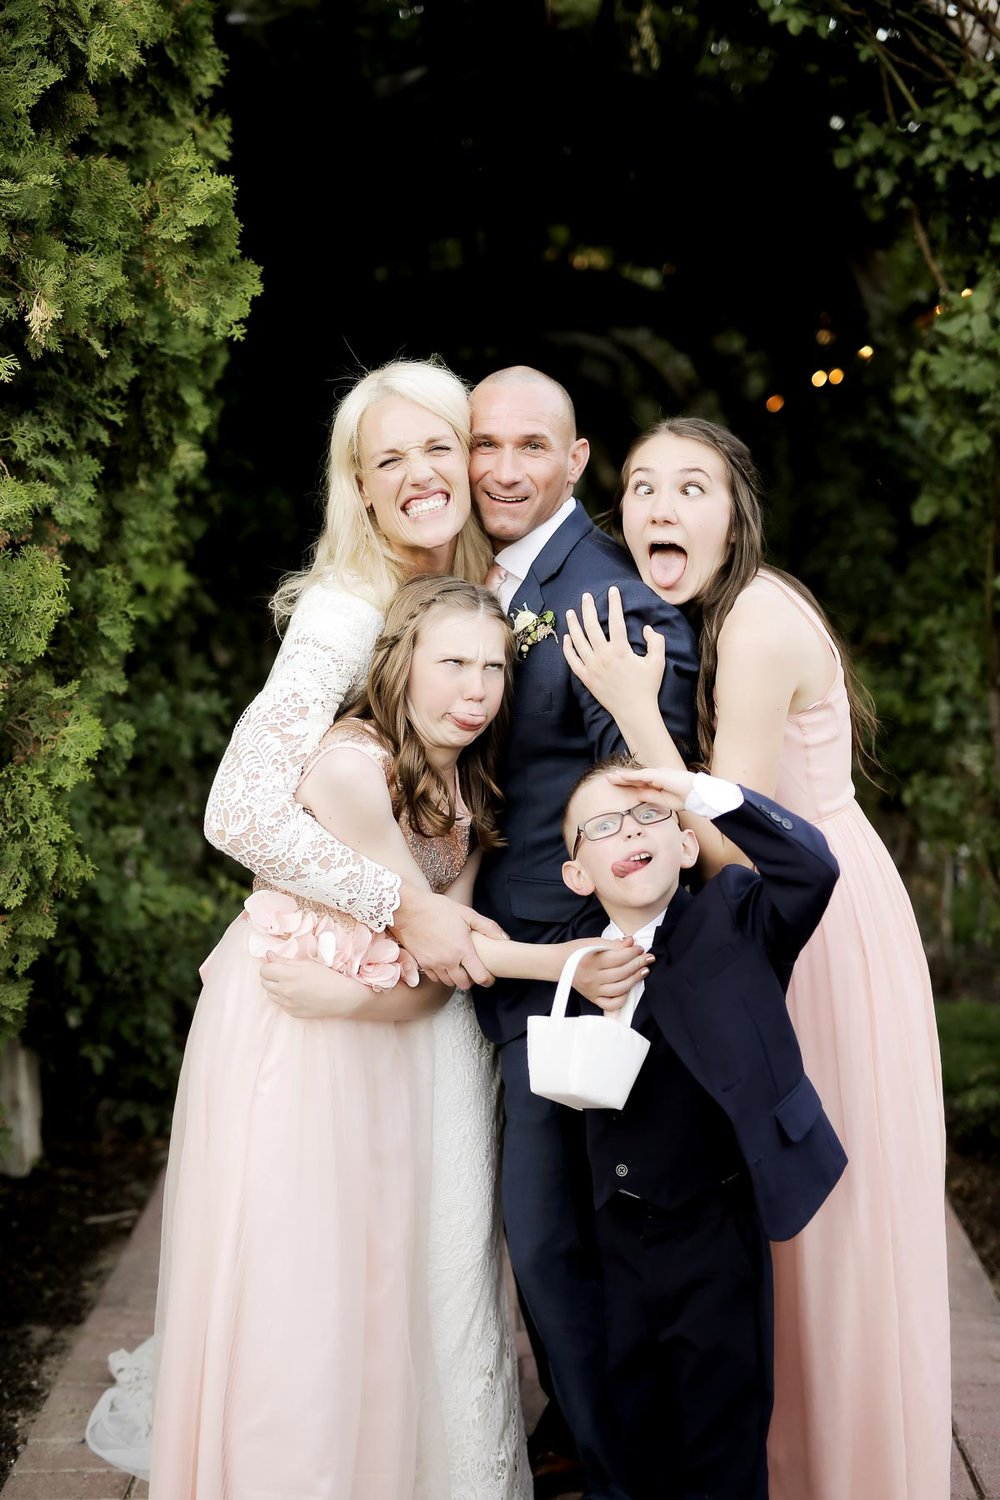 family-photos-at-weddings-silly-wedding-moments-real-weddings-utah-weddings-pepper_nix_photography-75.jpg